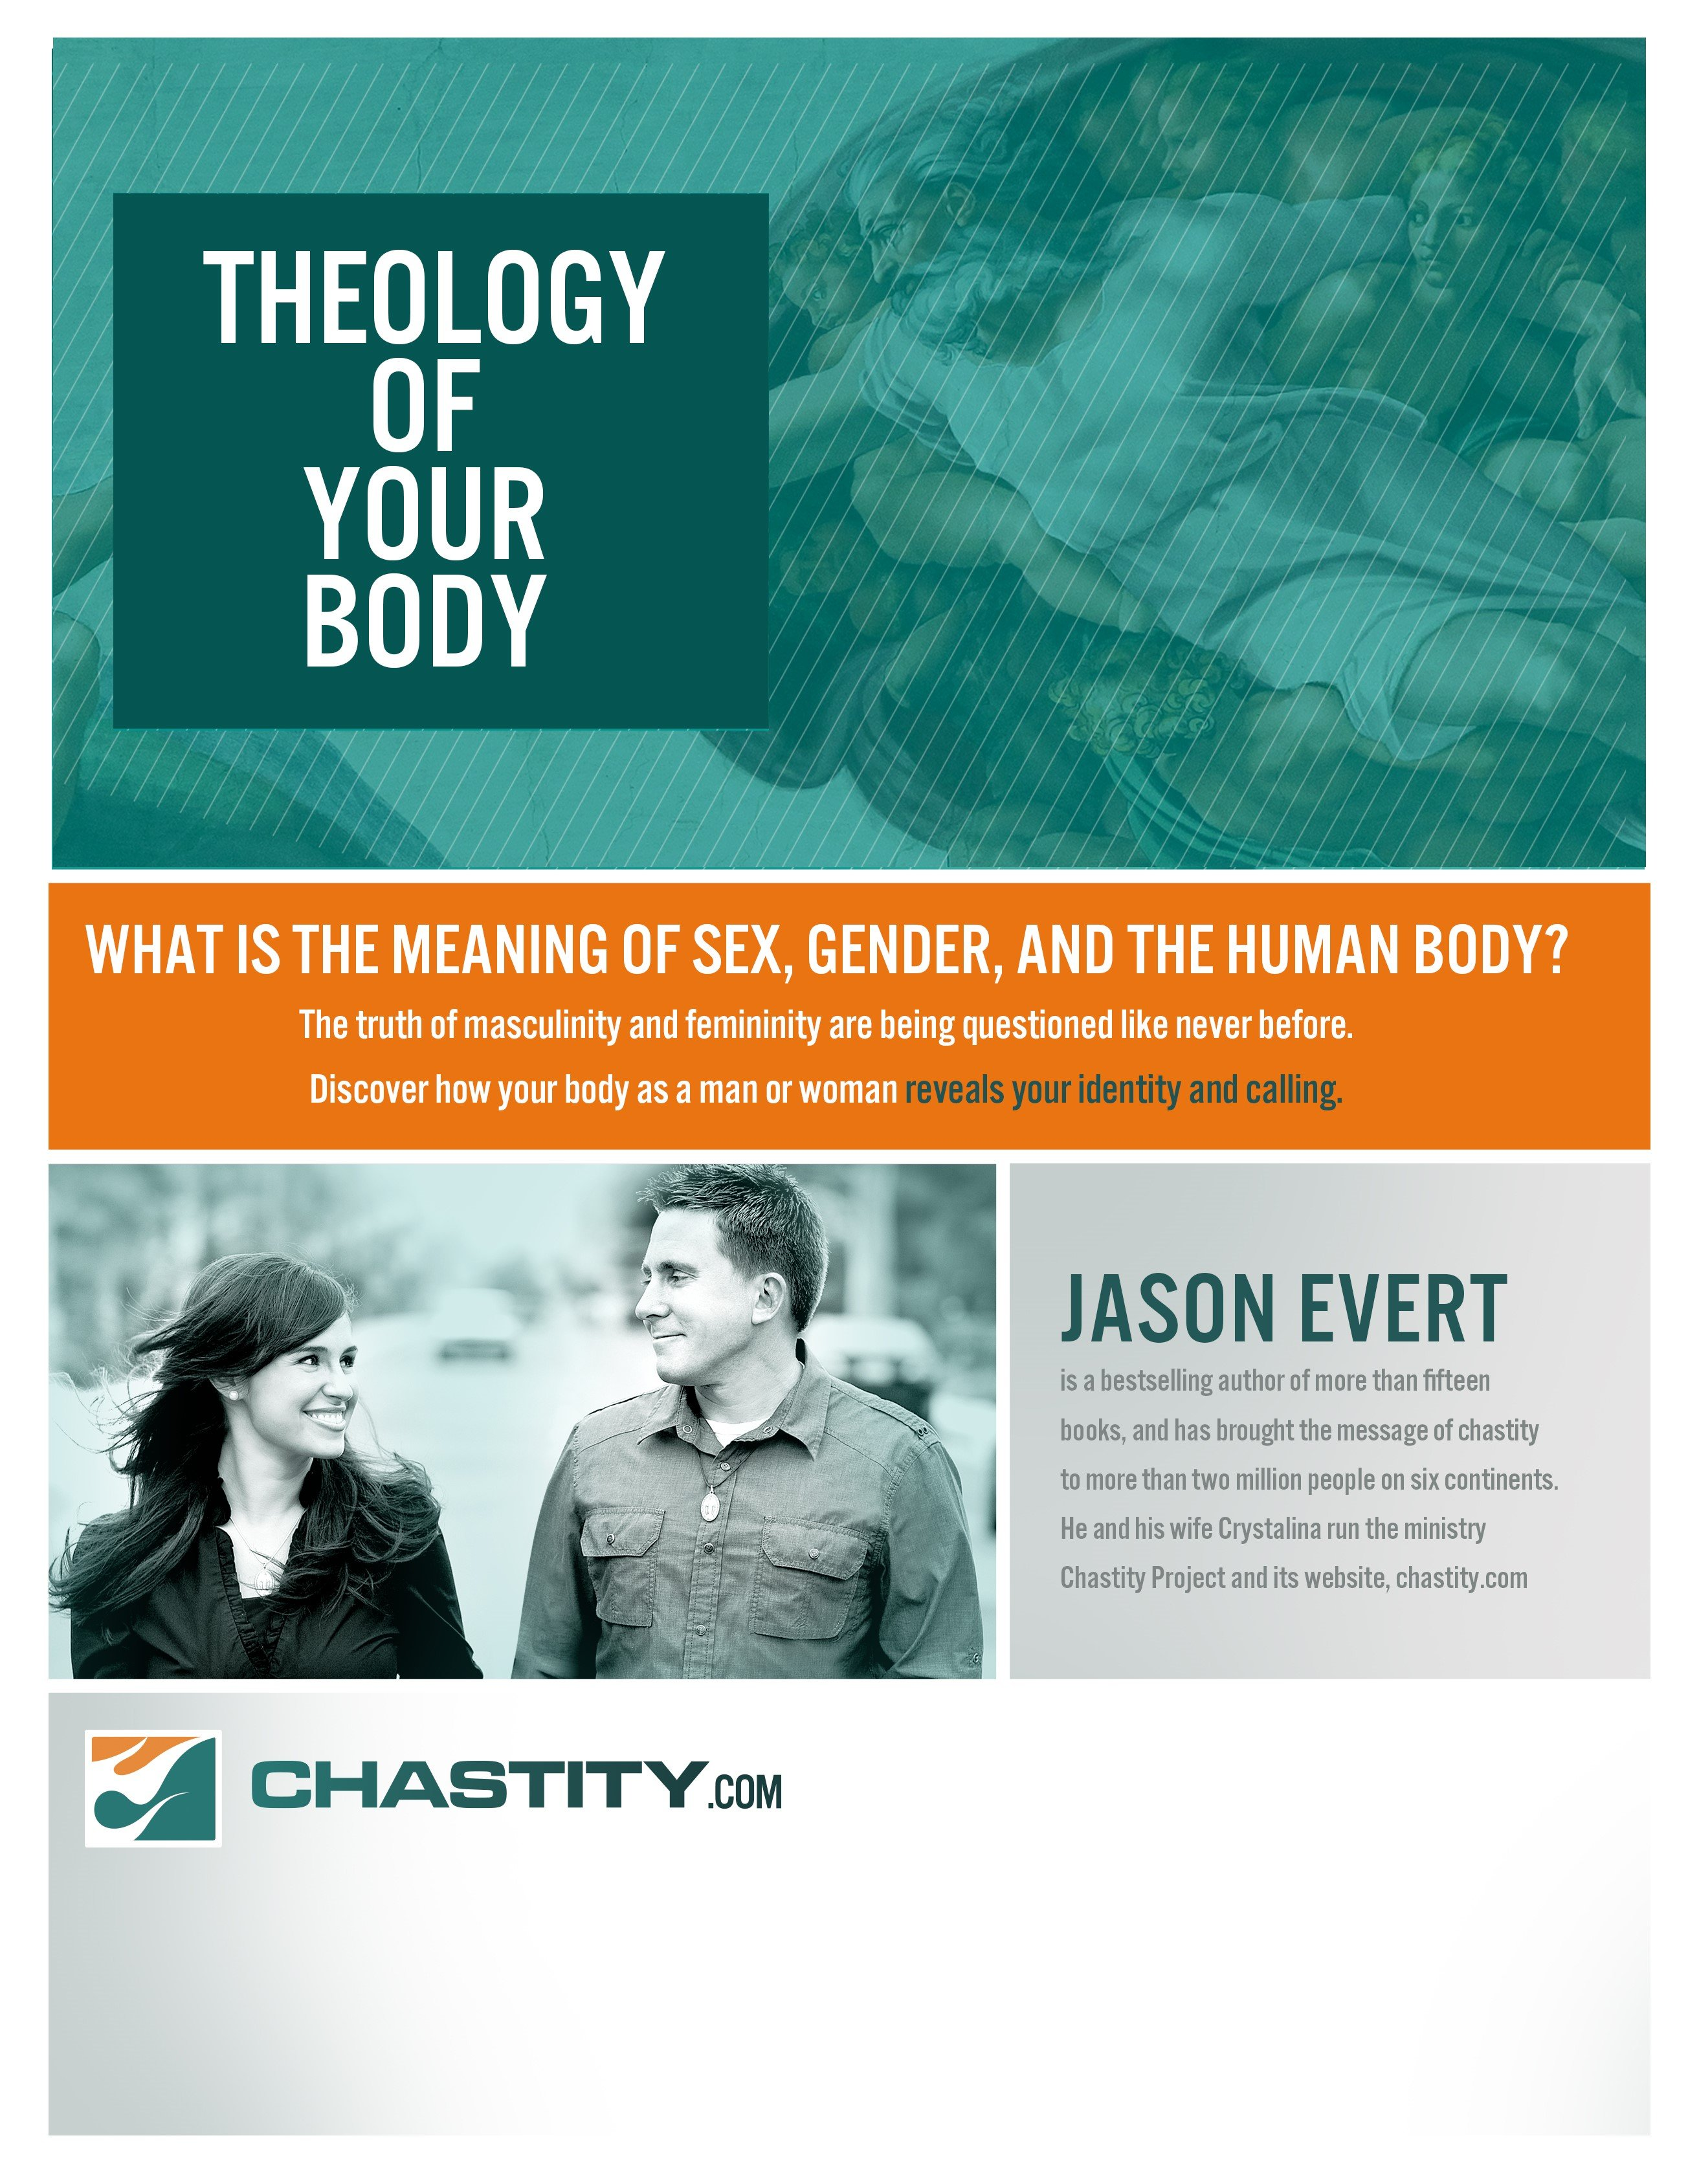 THEOLOGY OF YOUR BODY POSTER FROM JASON EVERT